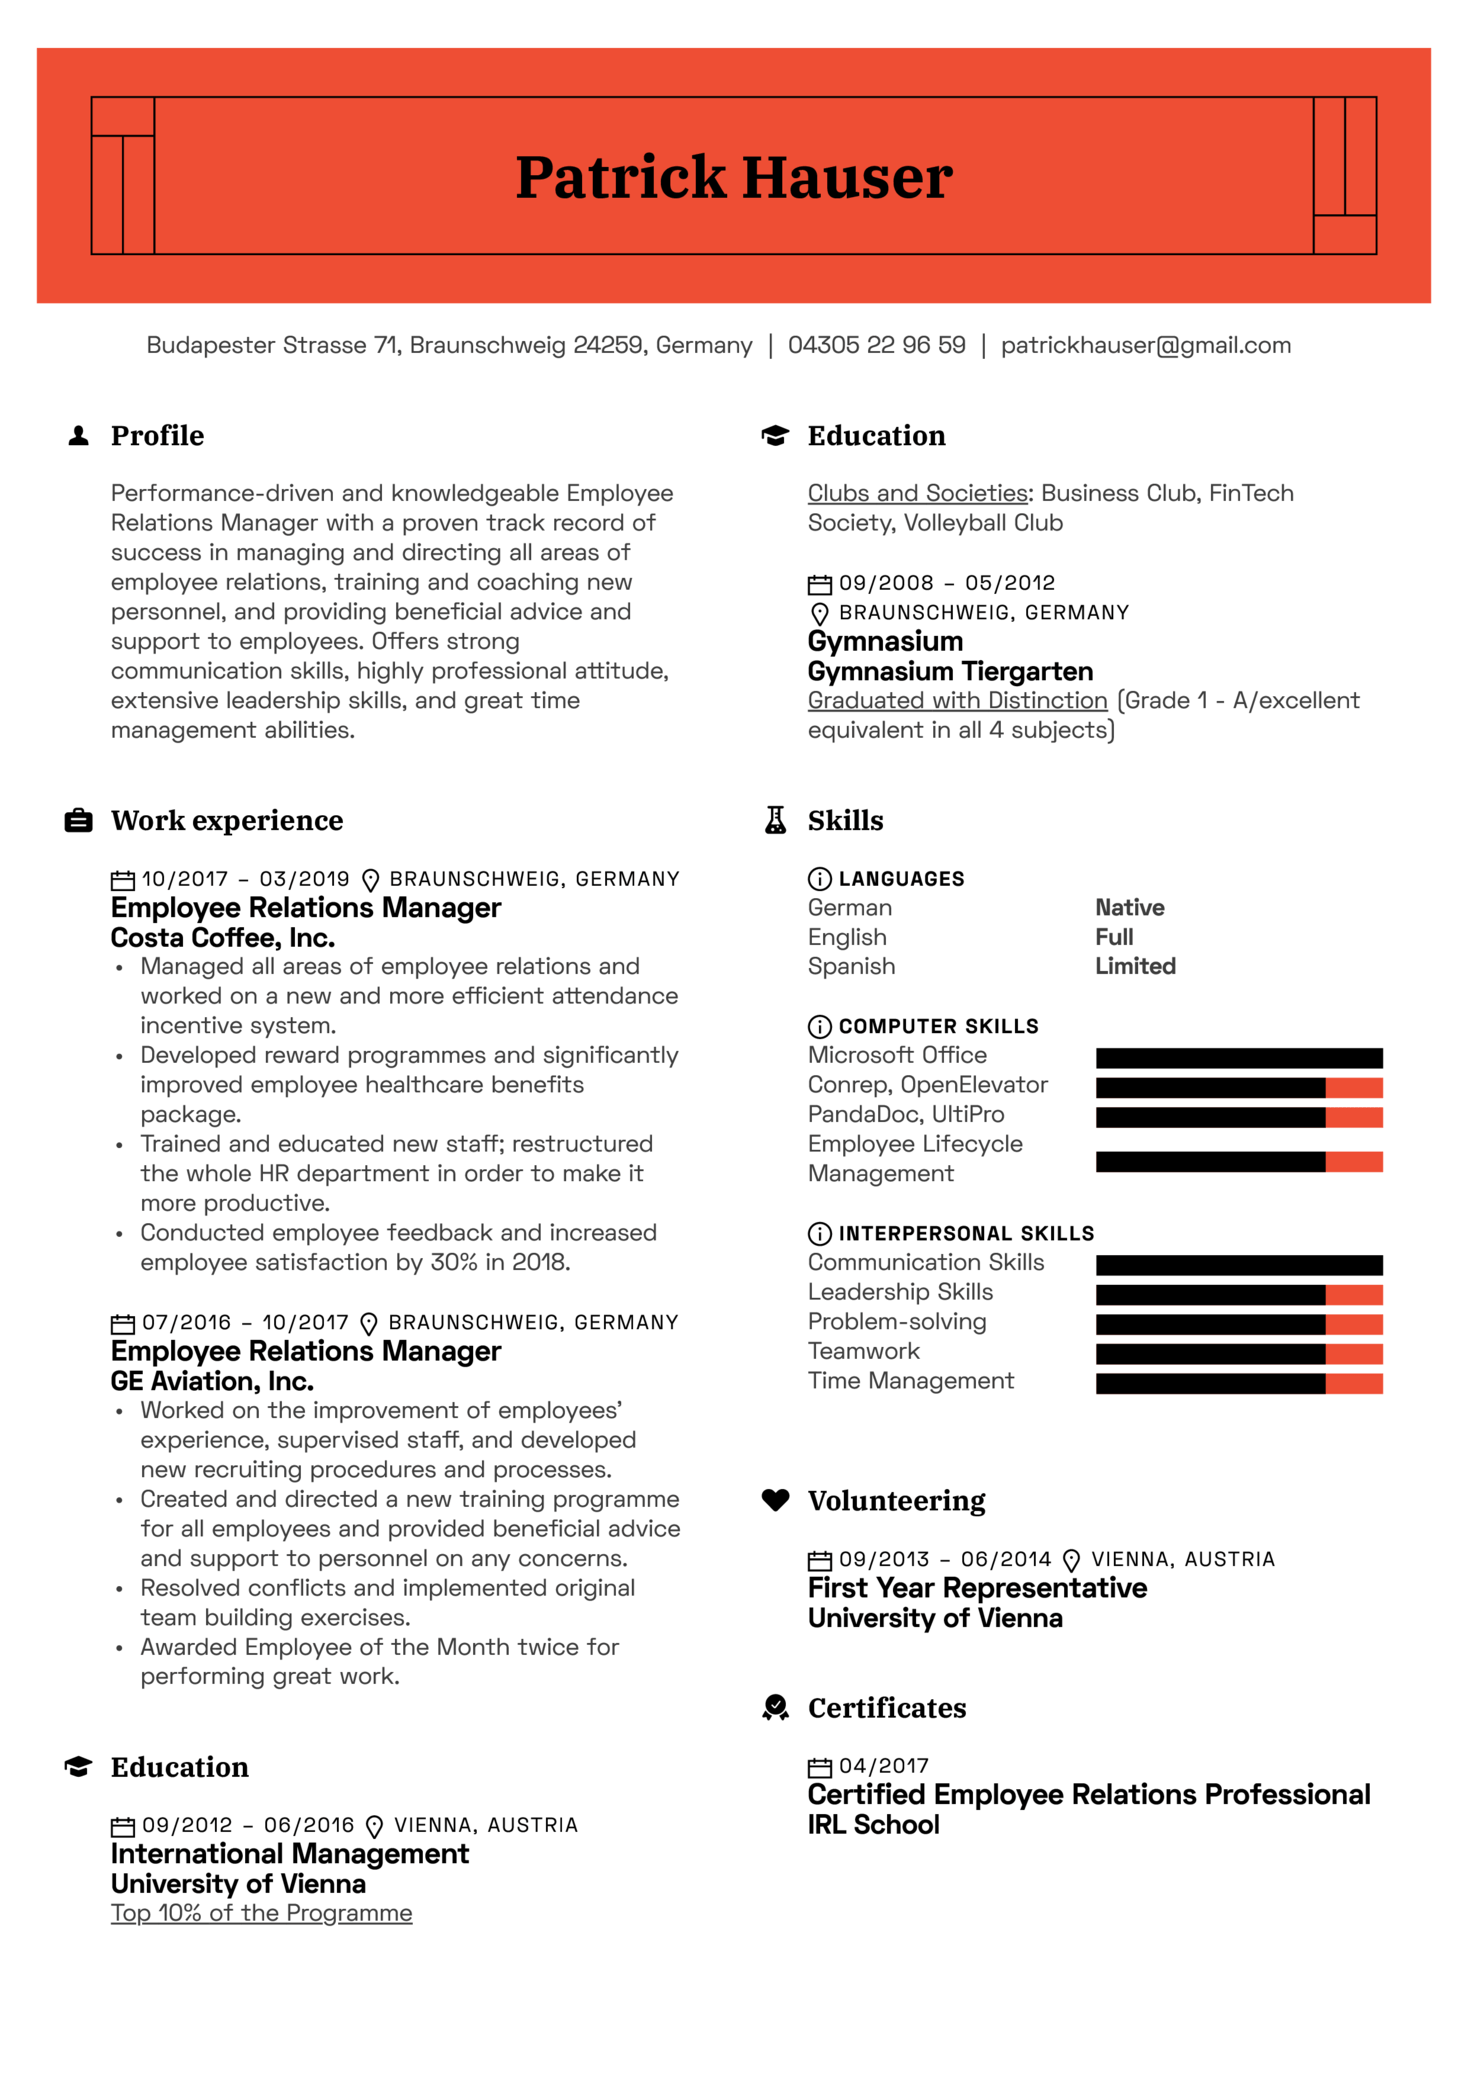 Employee Relations Manager Resume Sample (Teil 1)